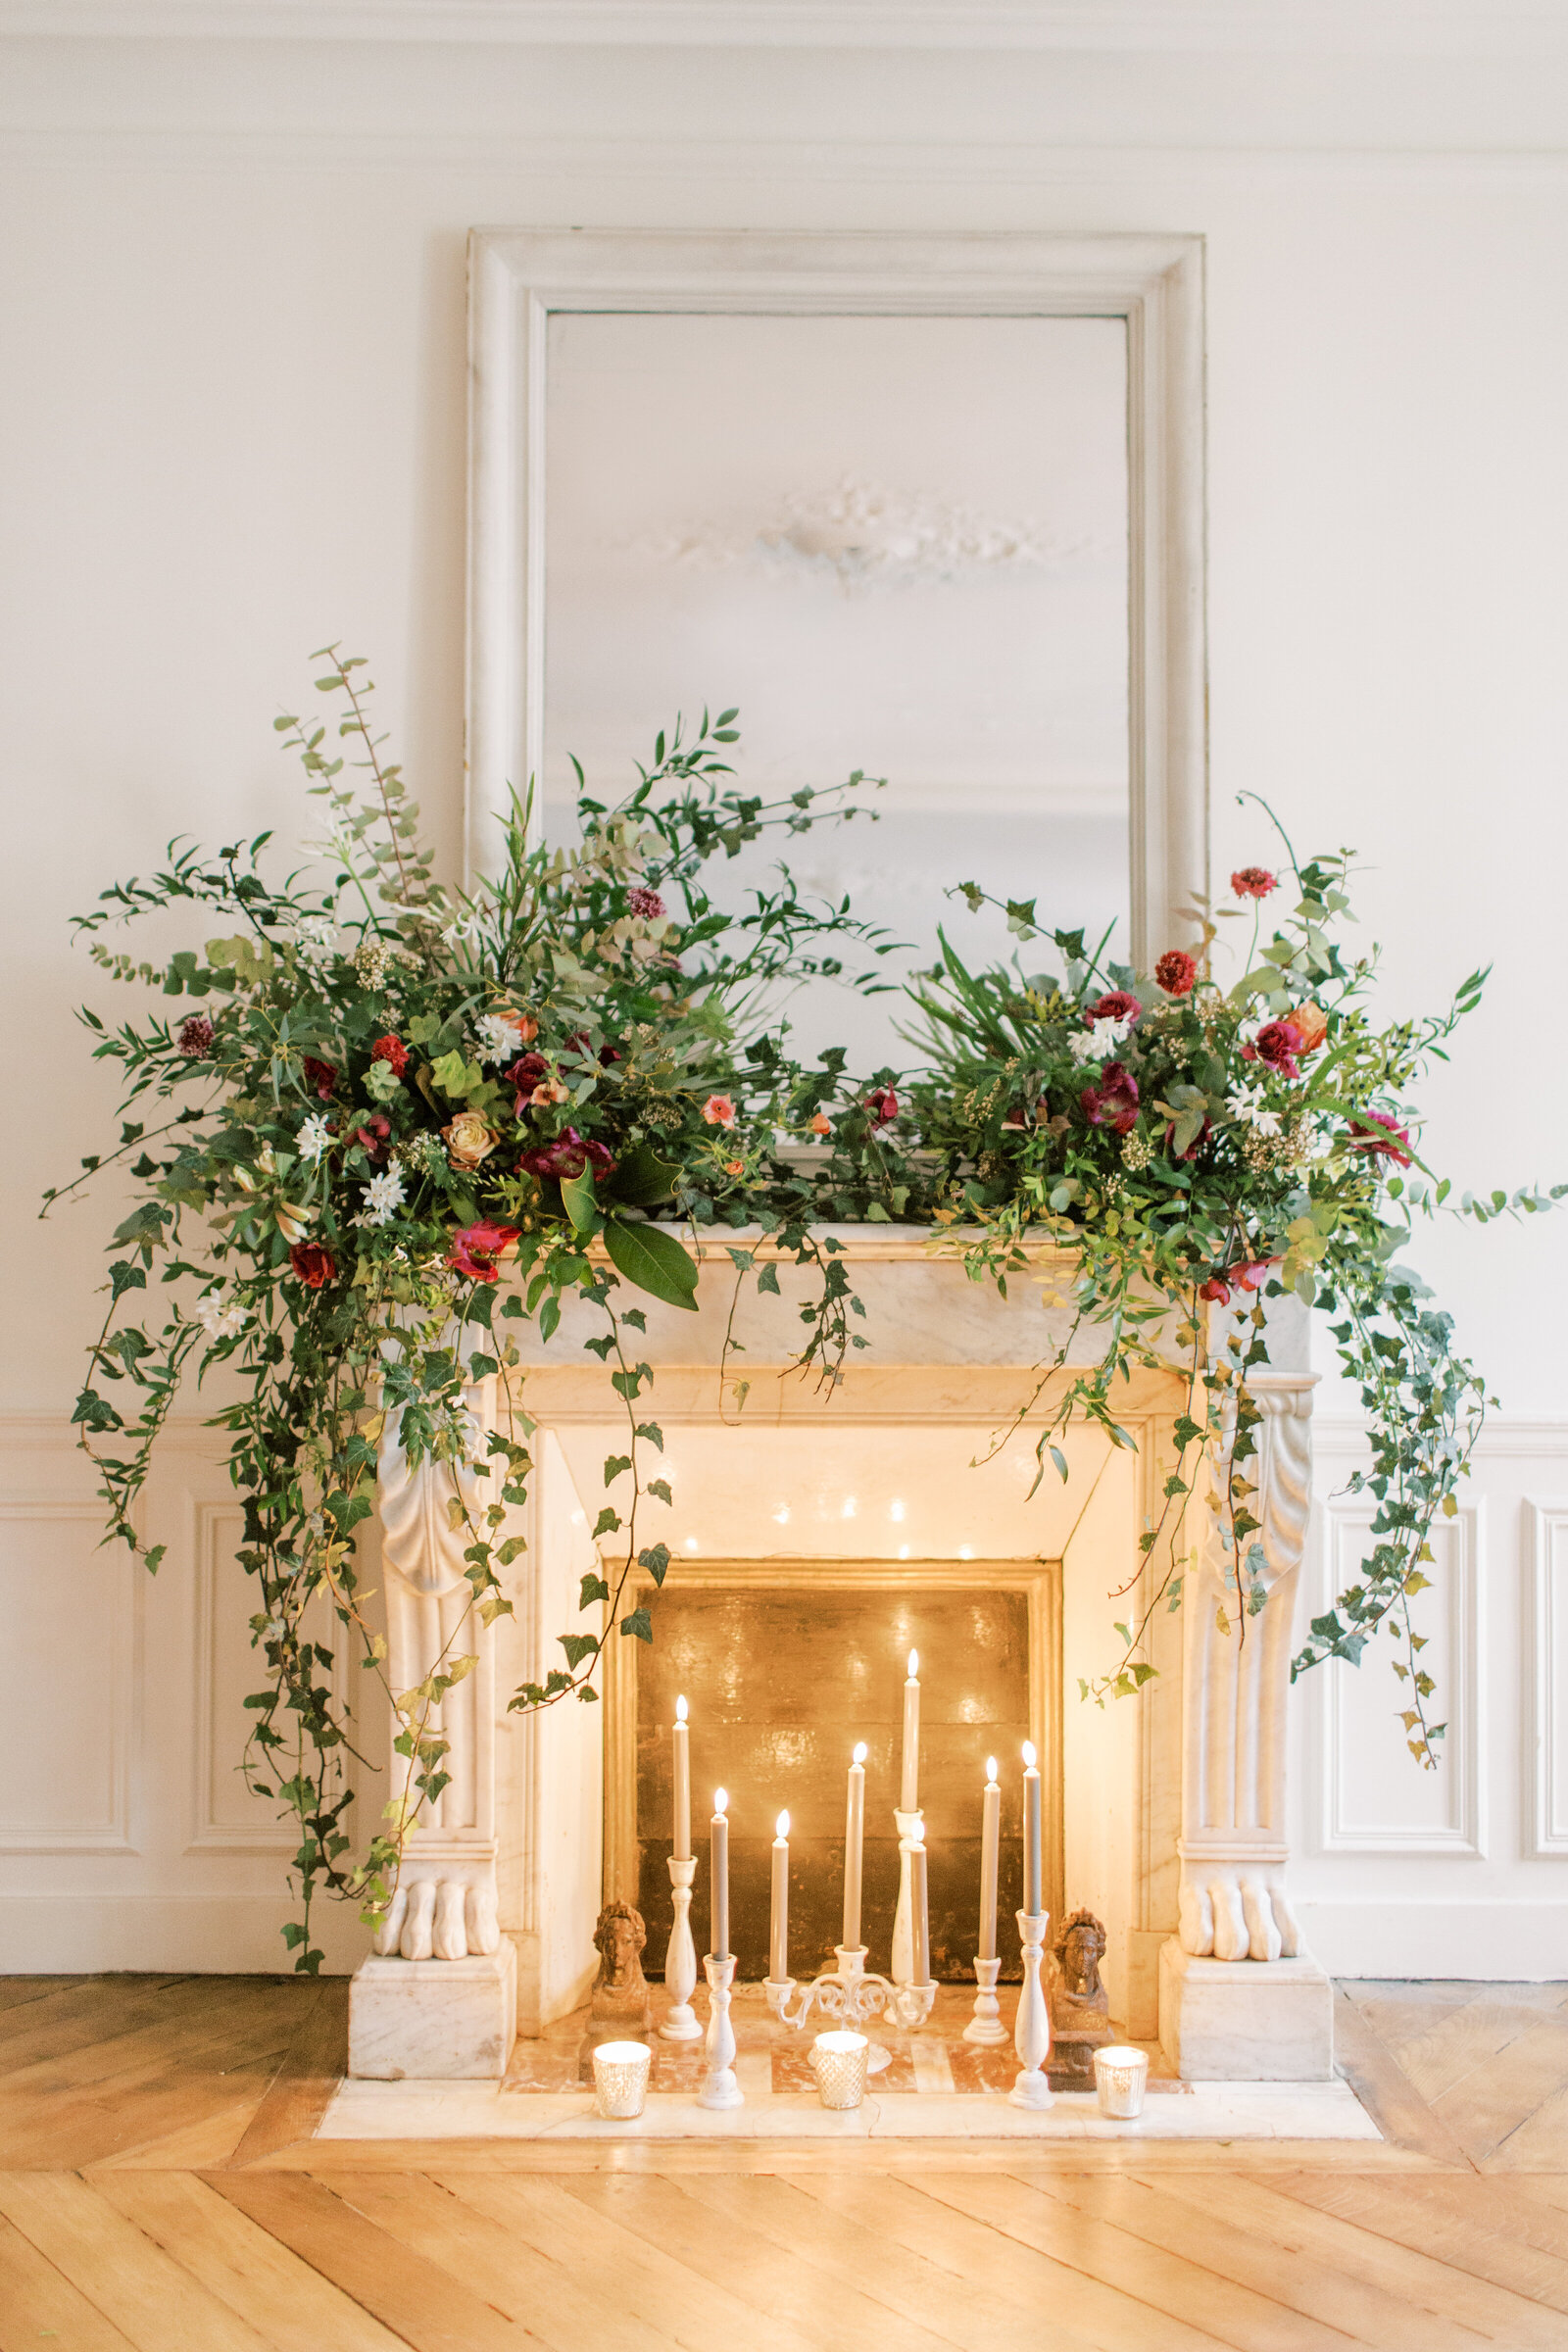 fireplace mantel with candles and flowers